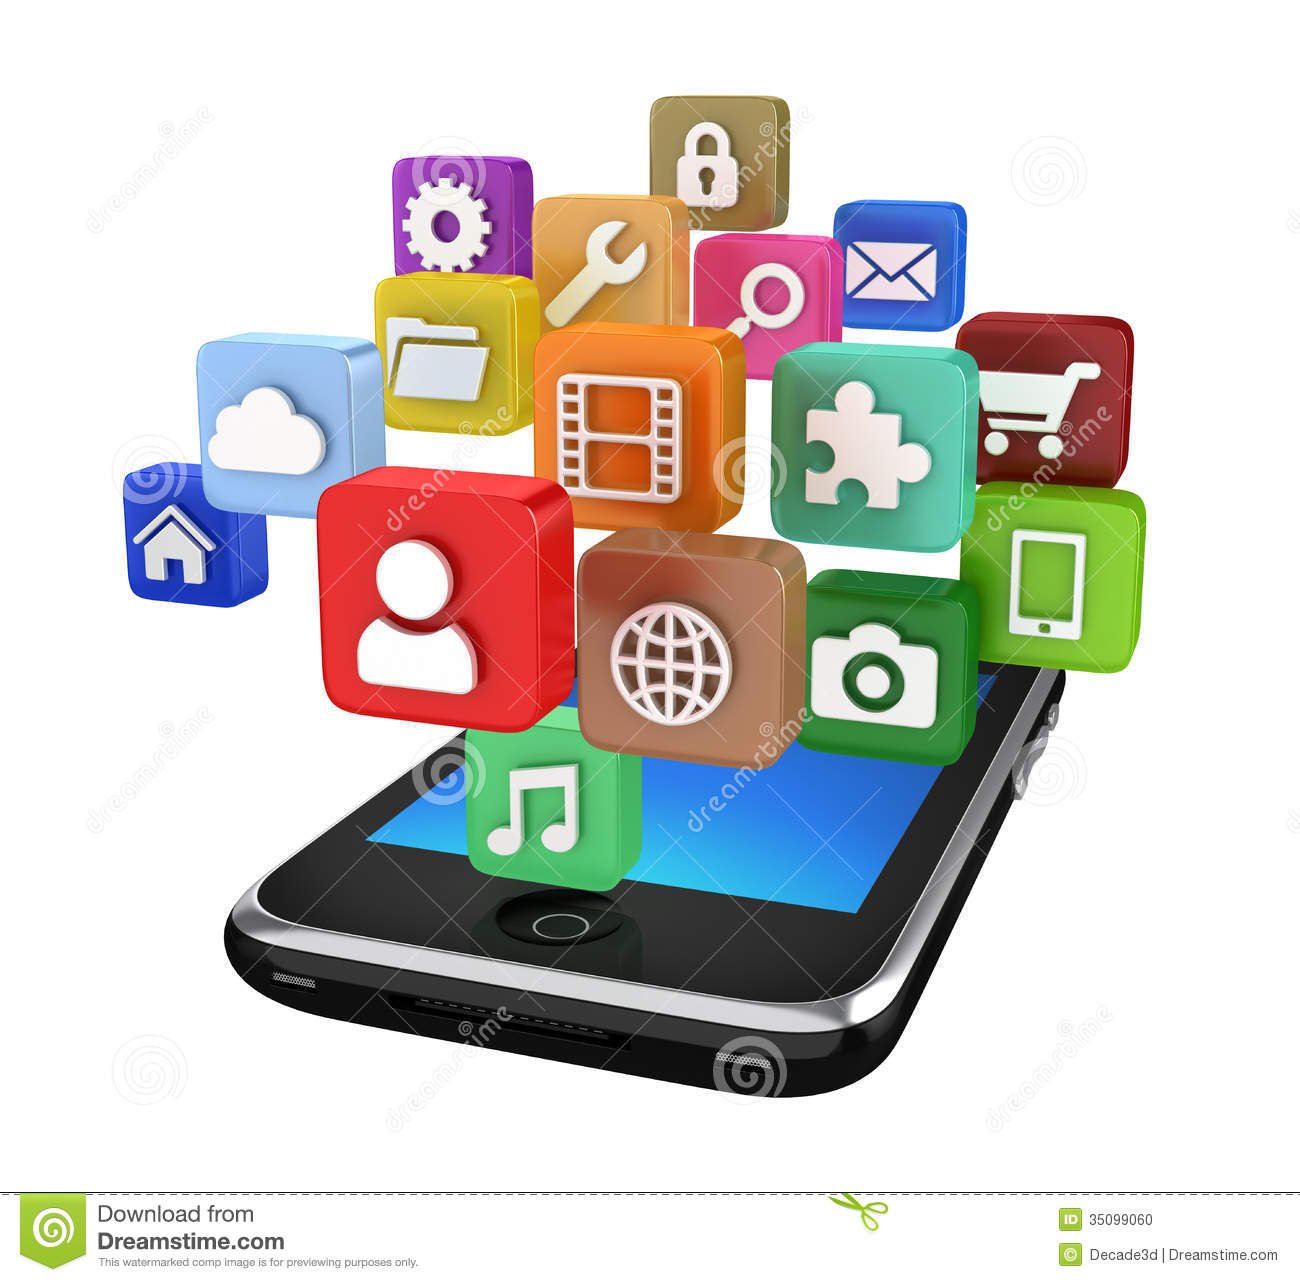 Smartphone app clipart banner royalty free download Smartphone App Icons - Isolated Stock Image - Image: 35099051 banner royalty free download